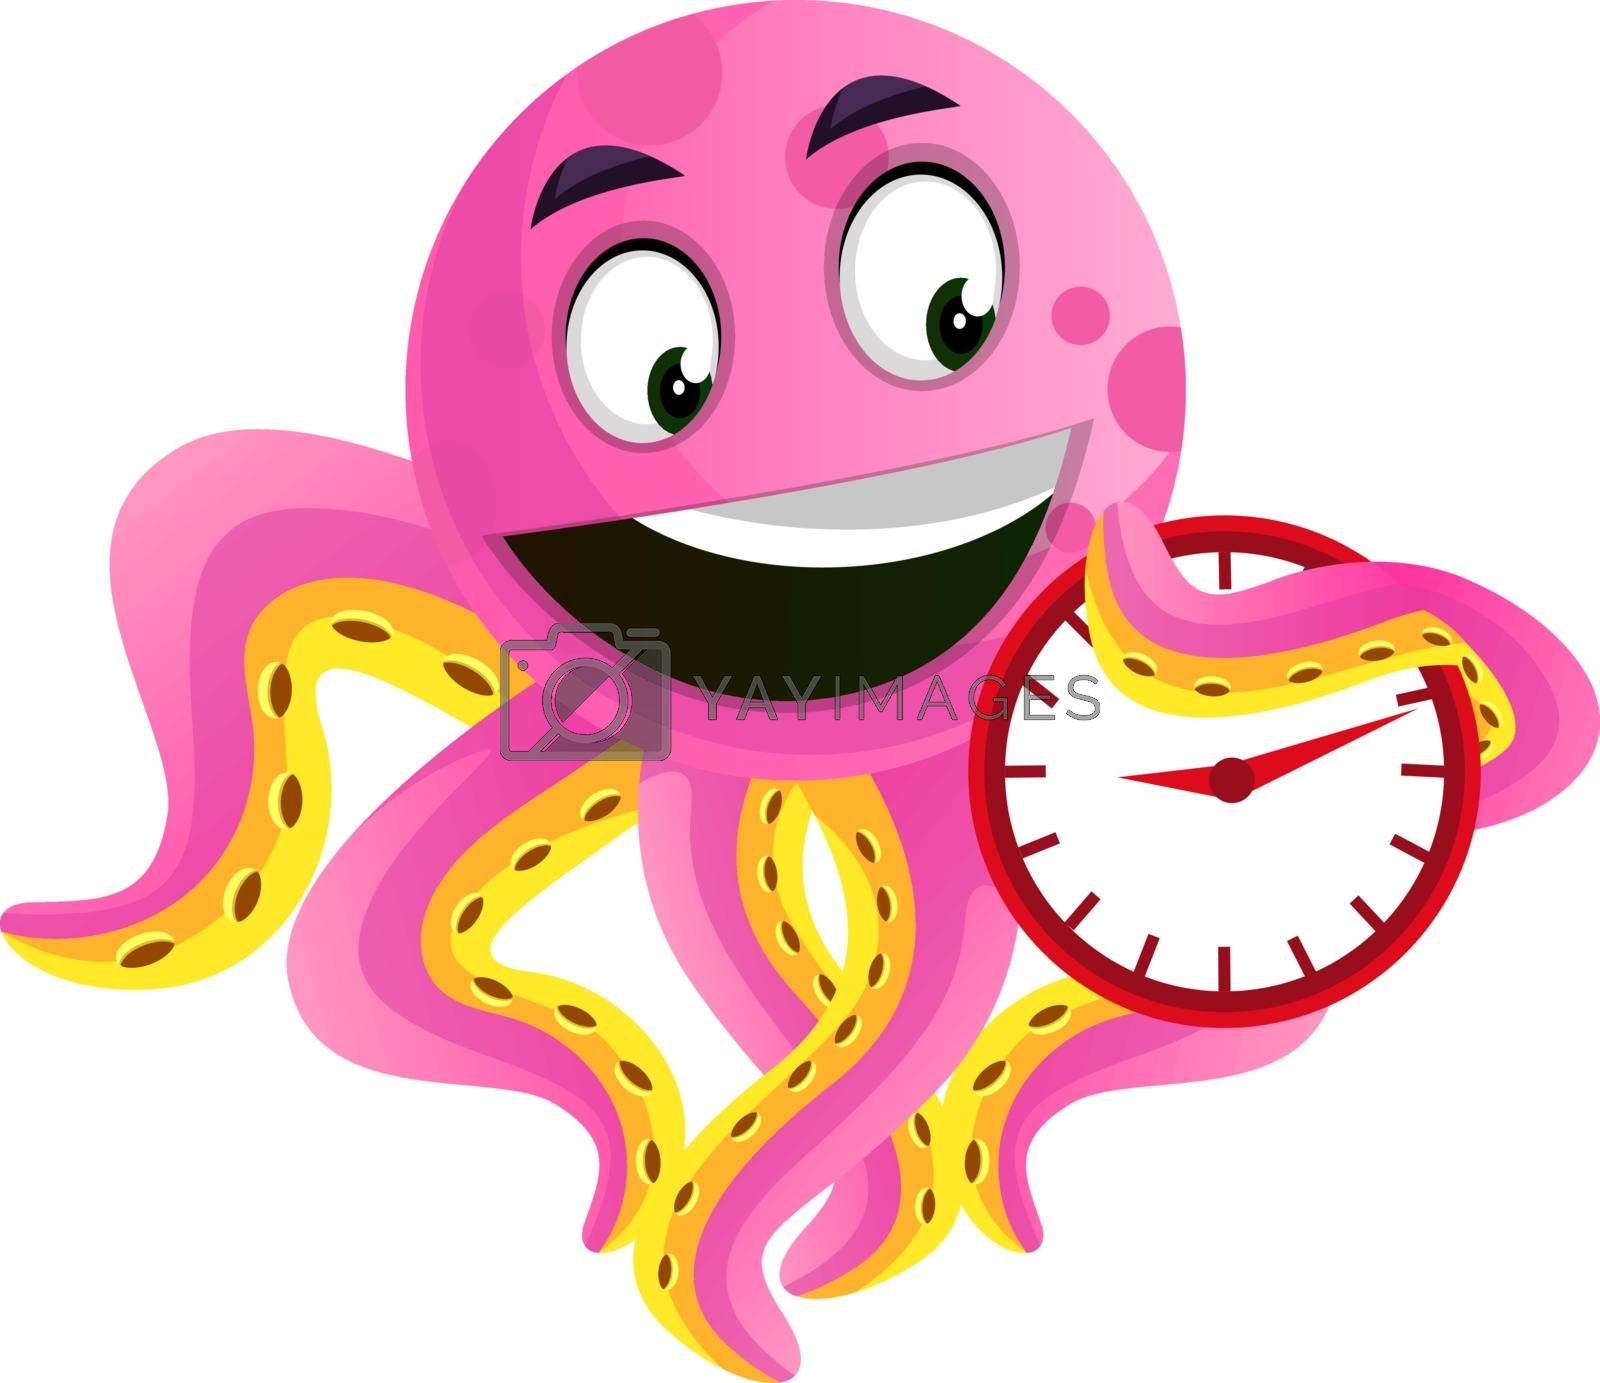 Royalty free image of Octopus holding a clock illustration vector on white background by Morphart